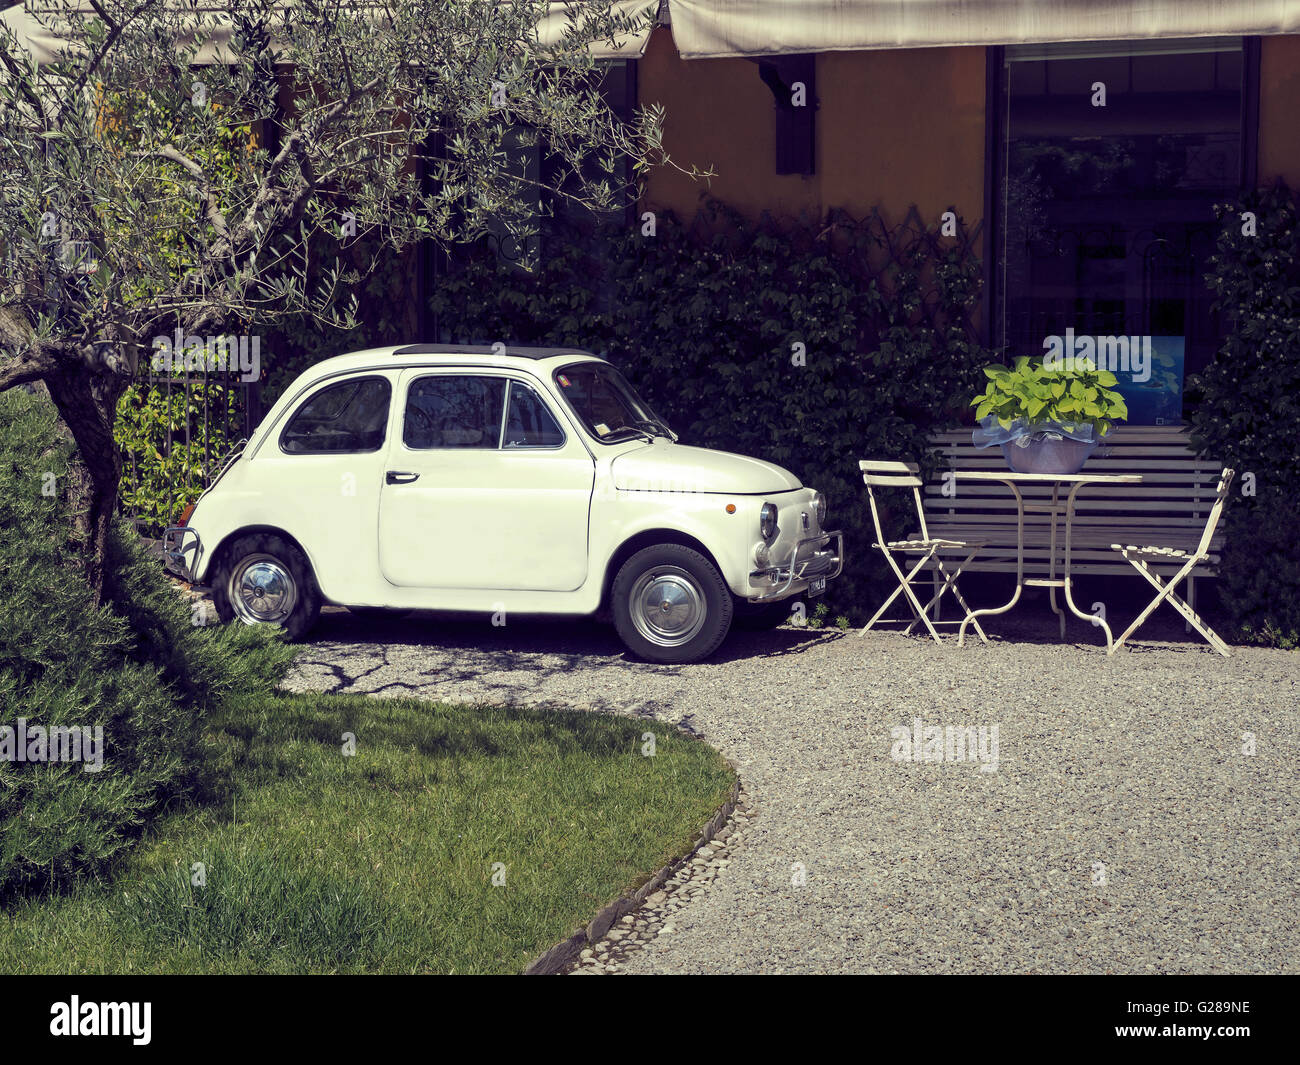 Fiat Kaiserslautern Parked Outside A House Stock Photos Parked Outside A House Stock